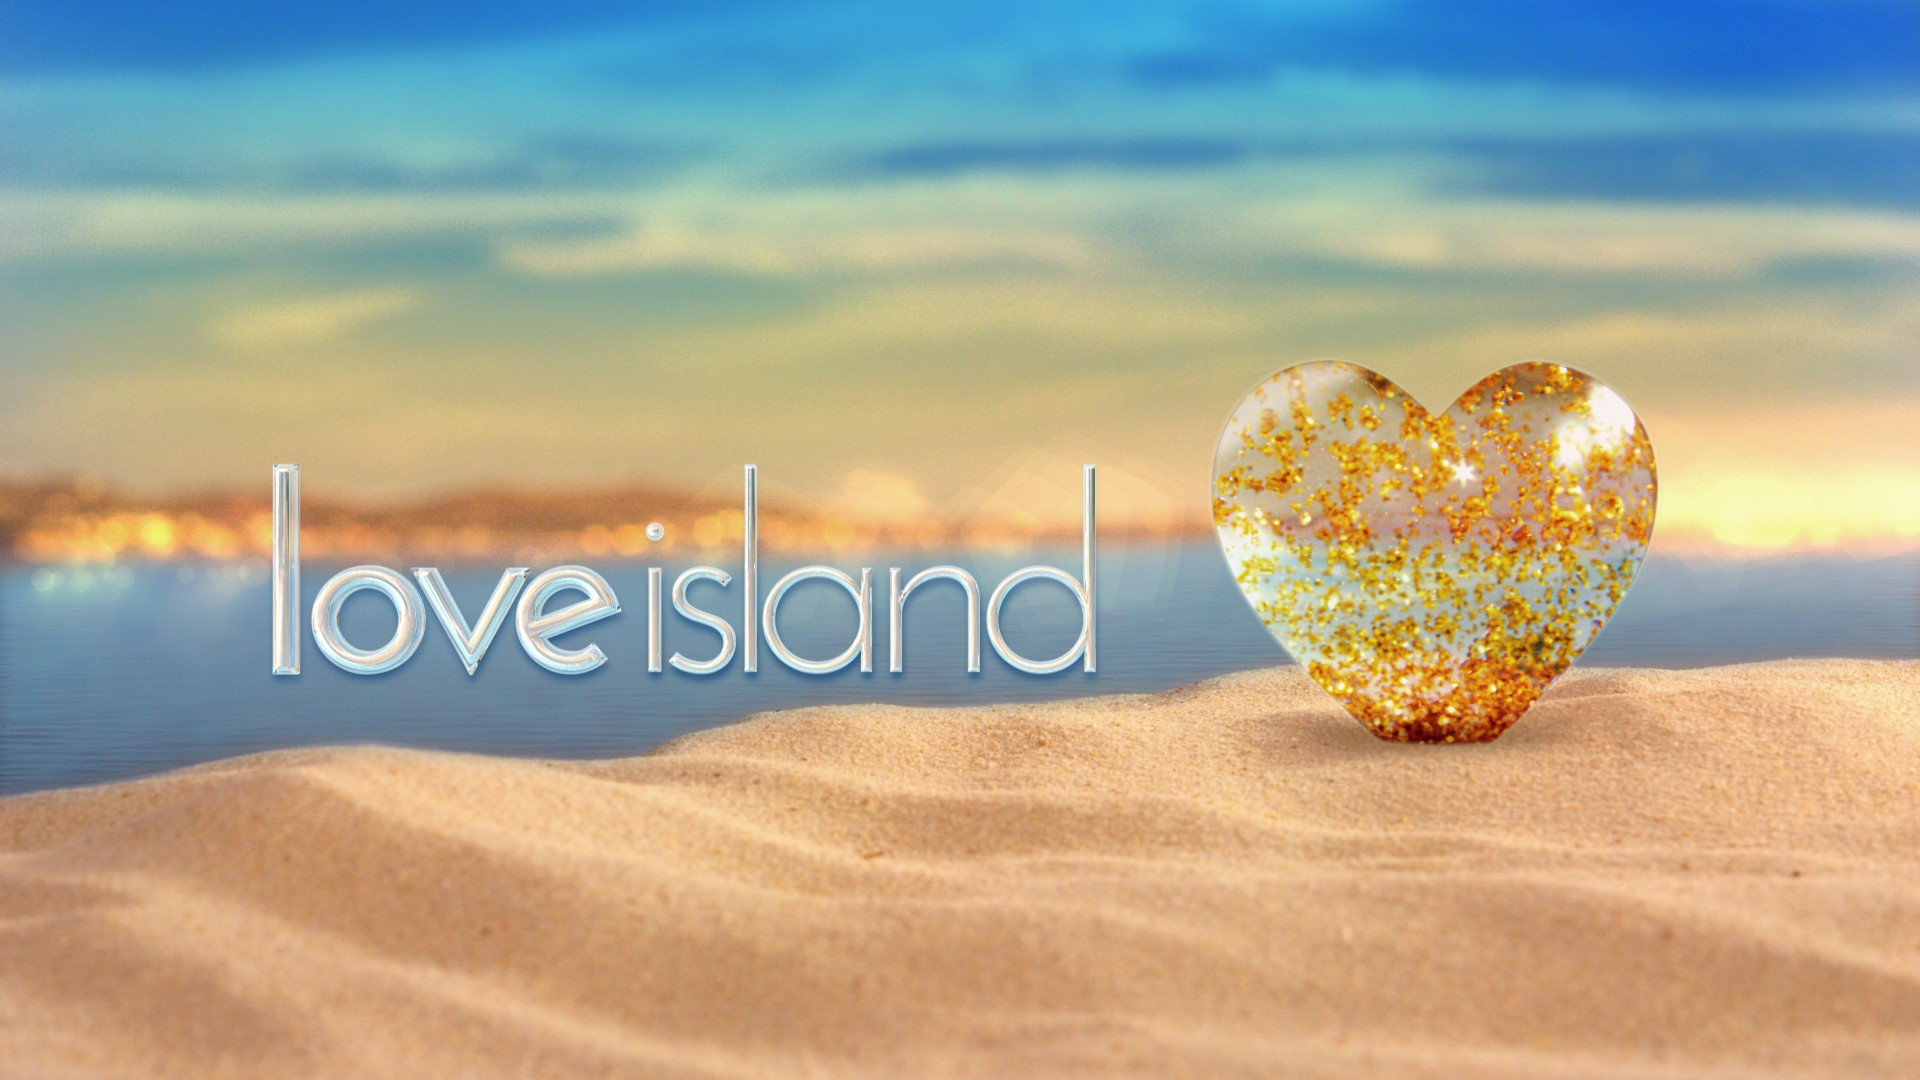 Looking for love? ITV hit show Love Island is looking for applicants